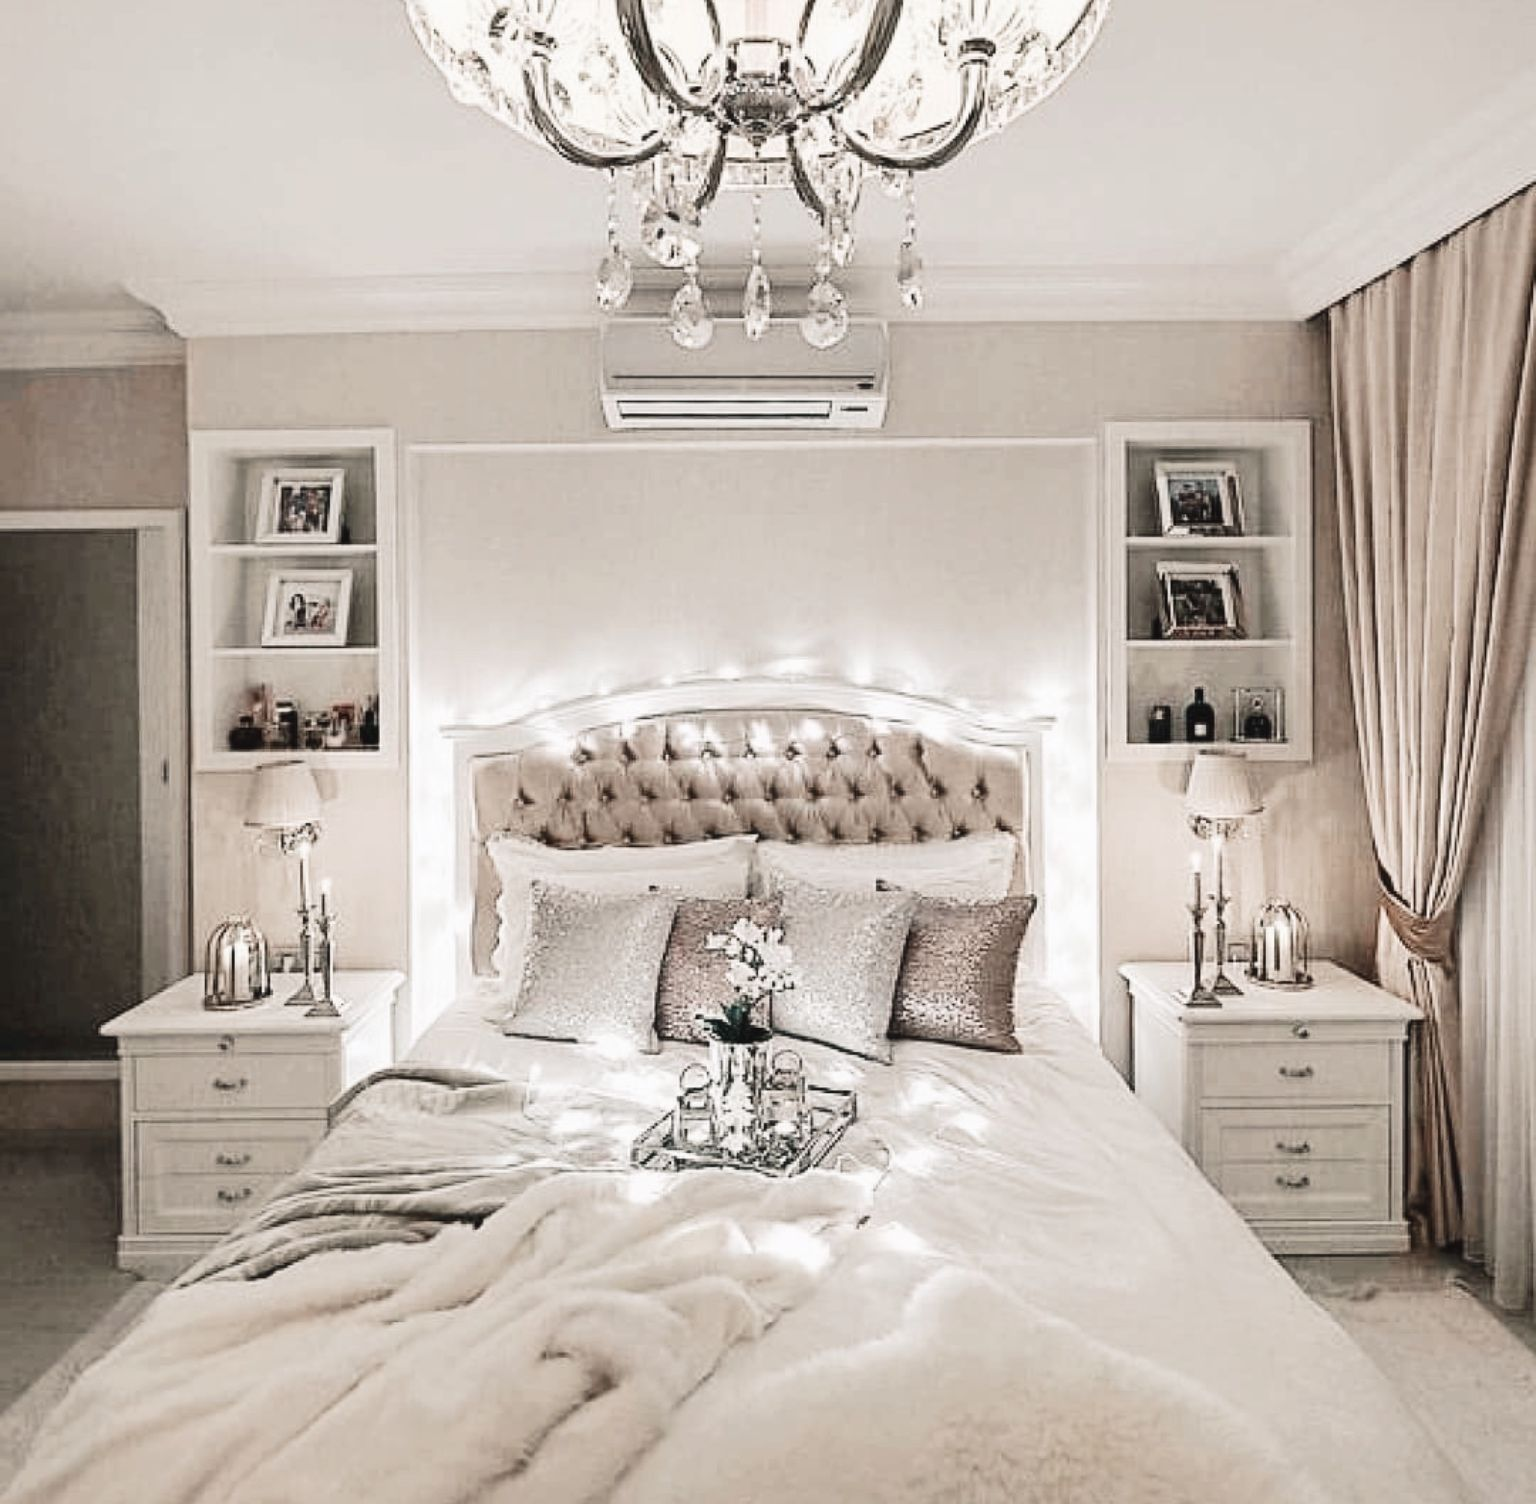 Baileyrzhang Fancy Bedroom Bedroom Decor Bedroom Decor Cozy